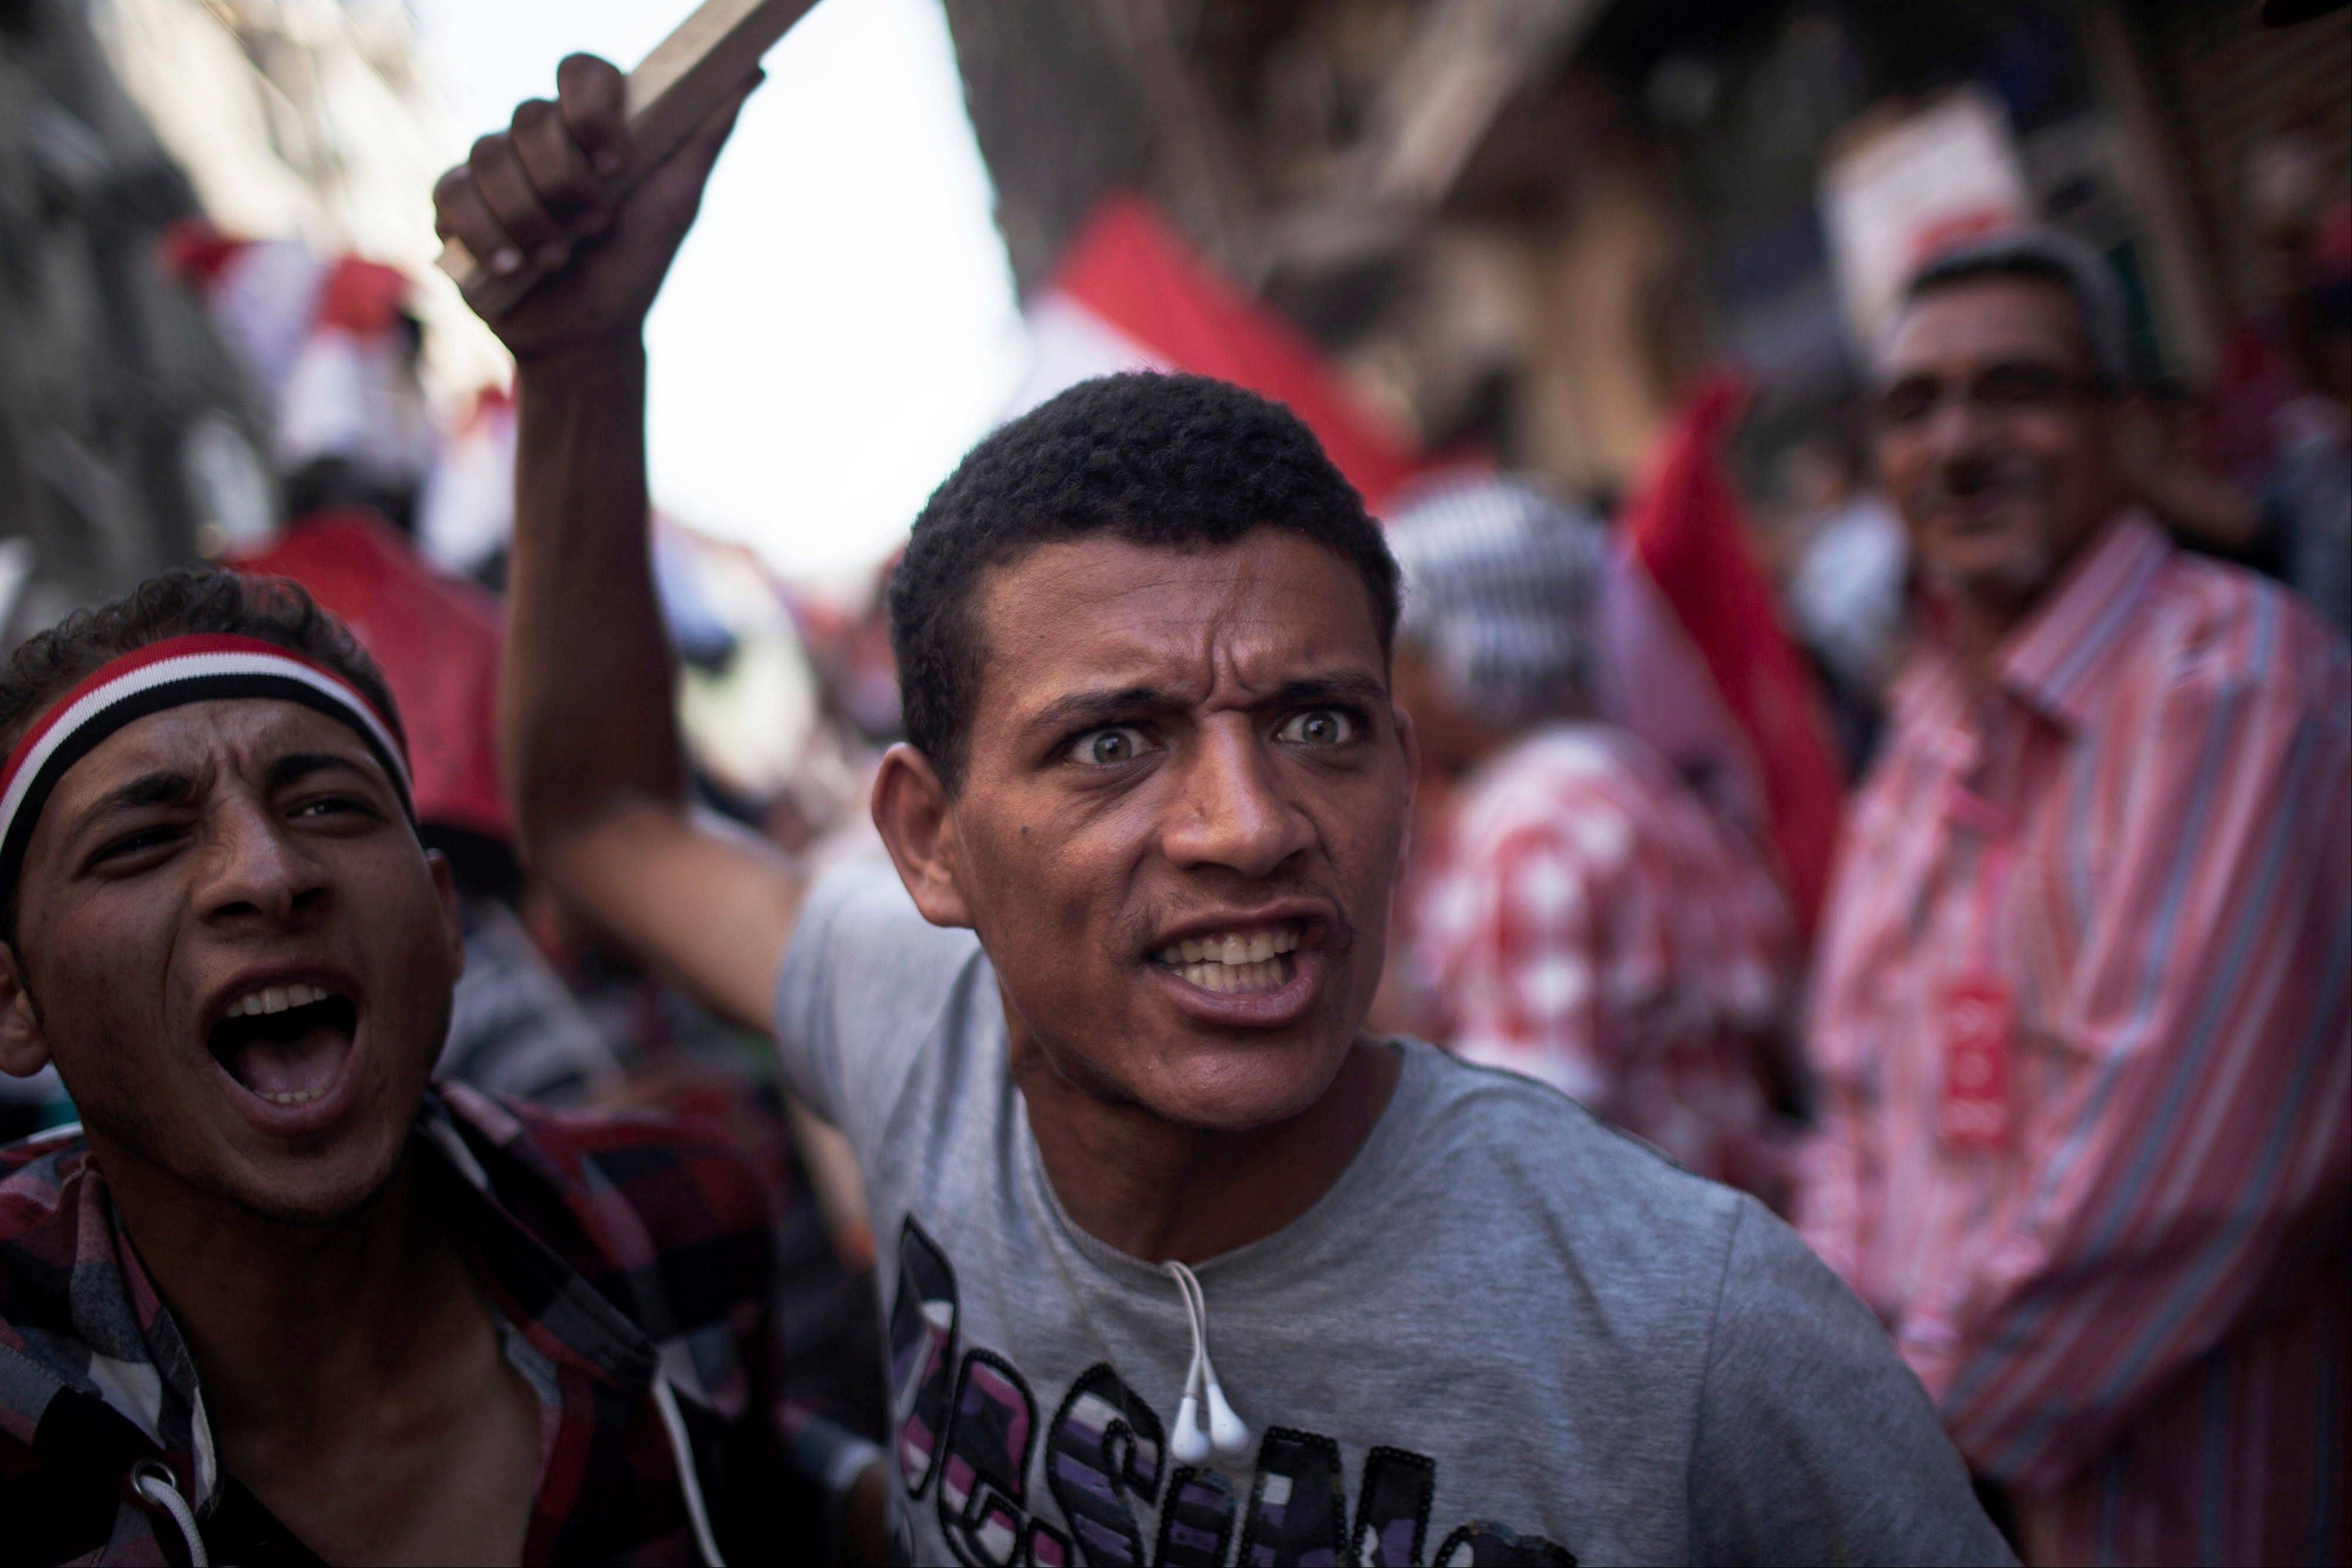 An Egyptian protester chants slogans against President Mohammed Morsi during a rally Sunday in Tahrir Square in Cairo.